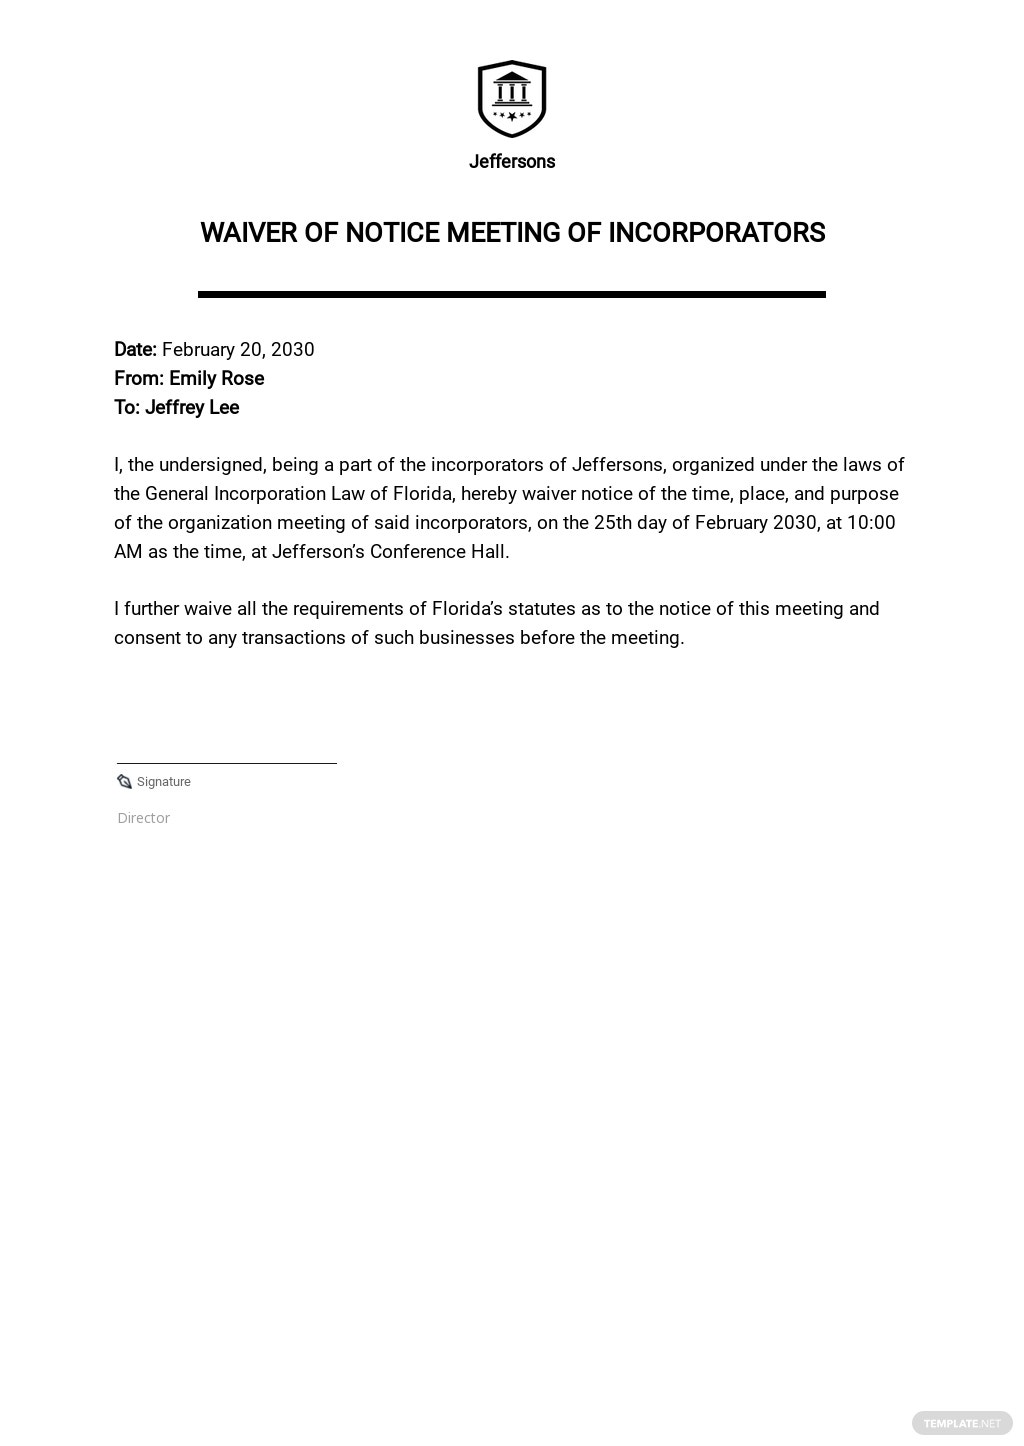 Sample Waiver of Notice Meeting of Incorporators Template